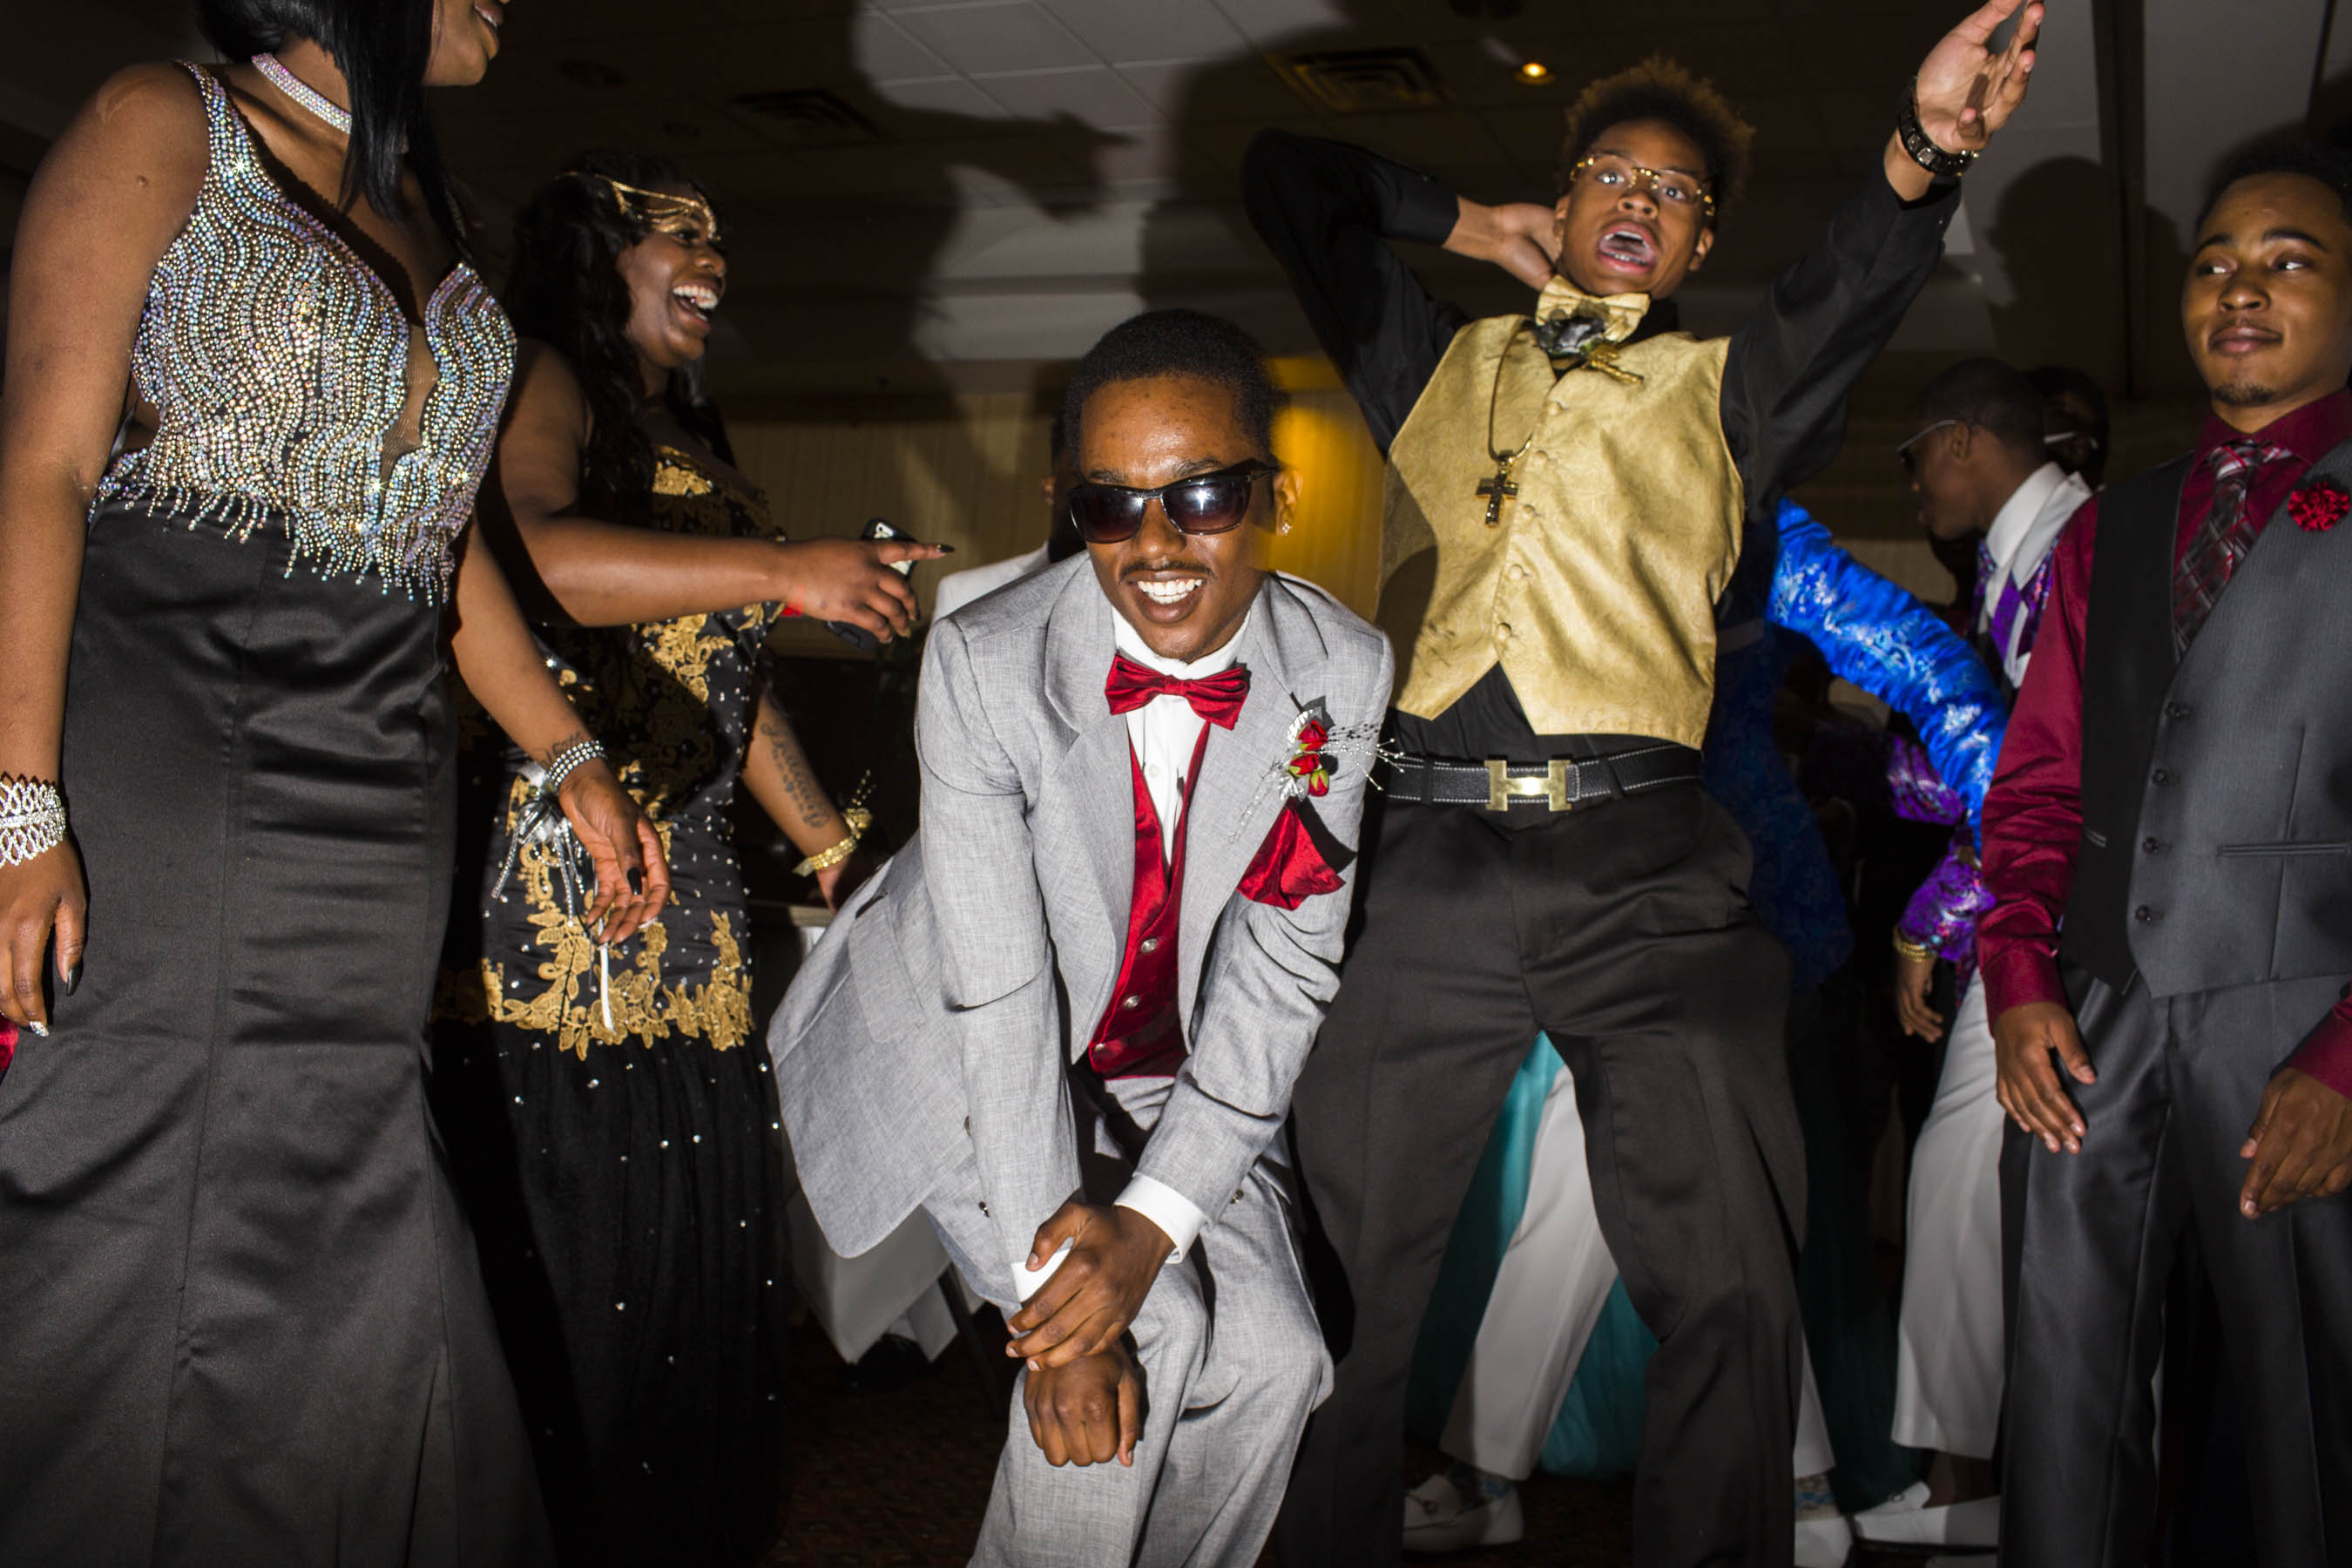 Unidentified students dance during their high school prom on Saturday, May 21, 2016 in Flint, Michigan.